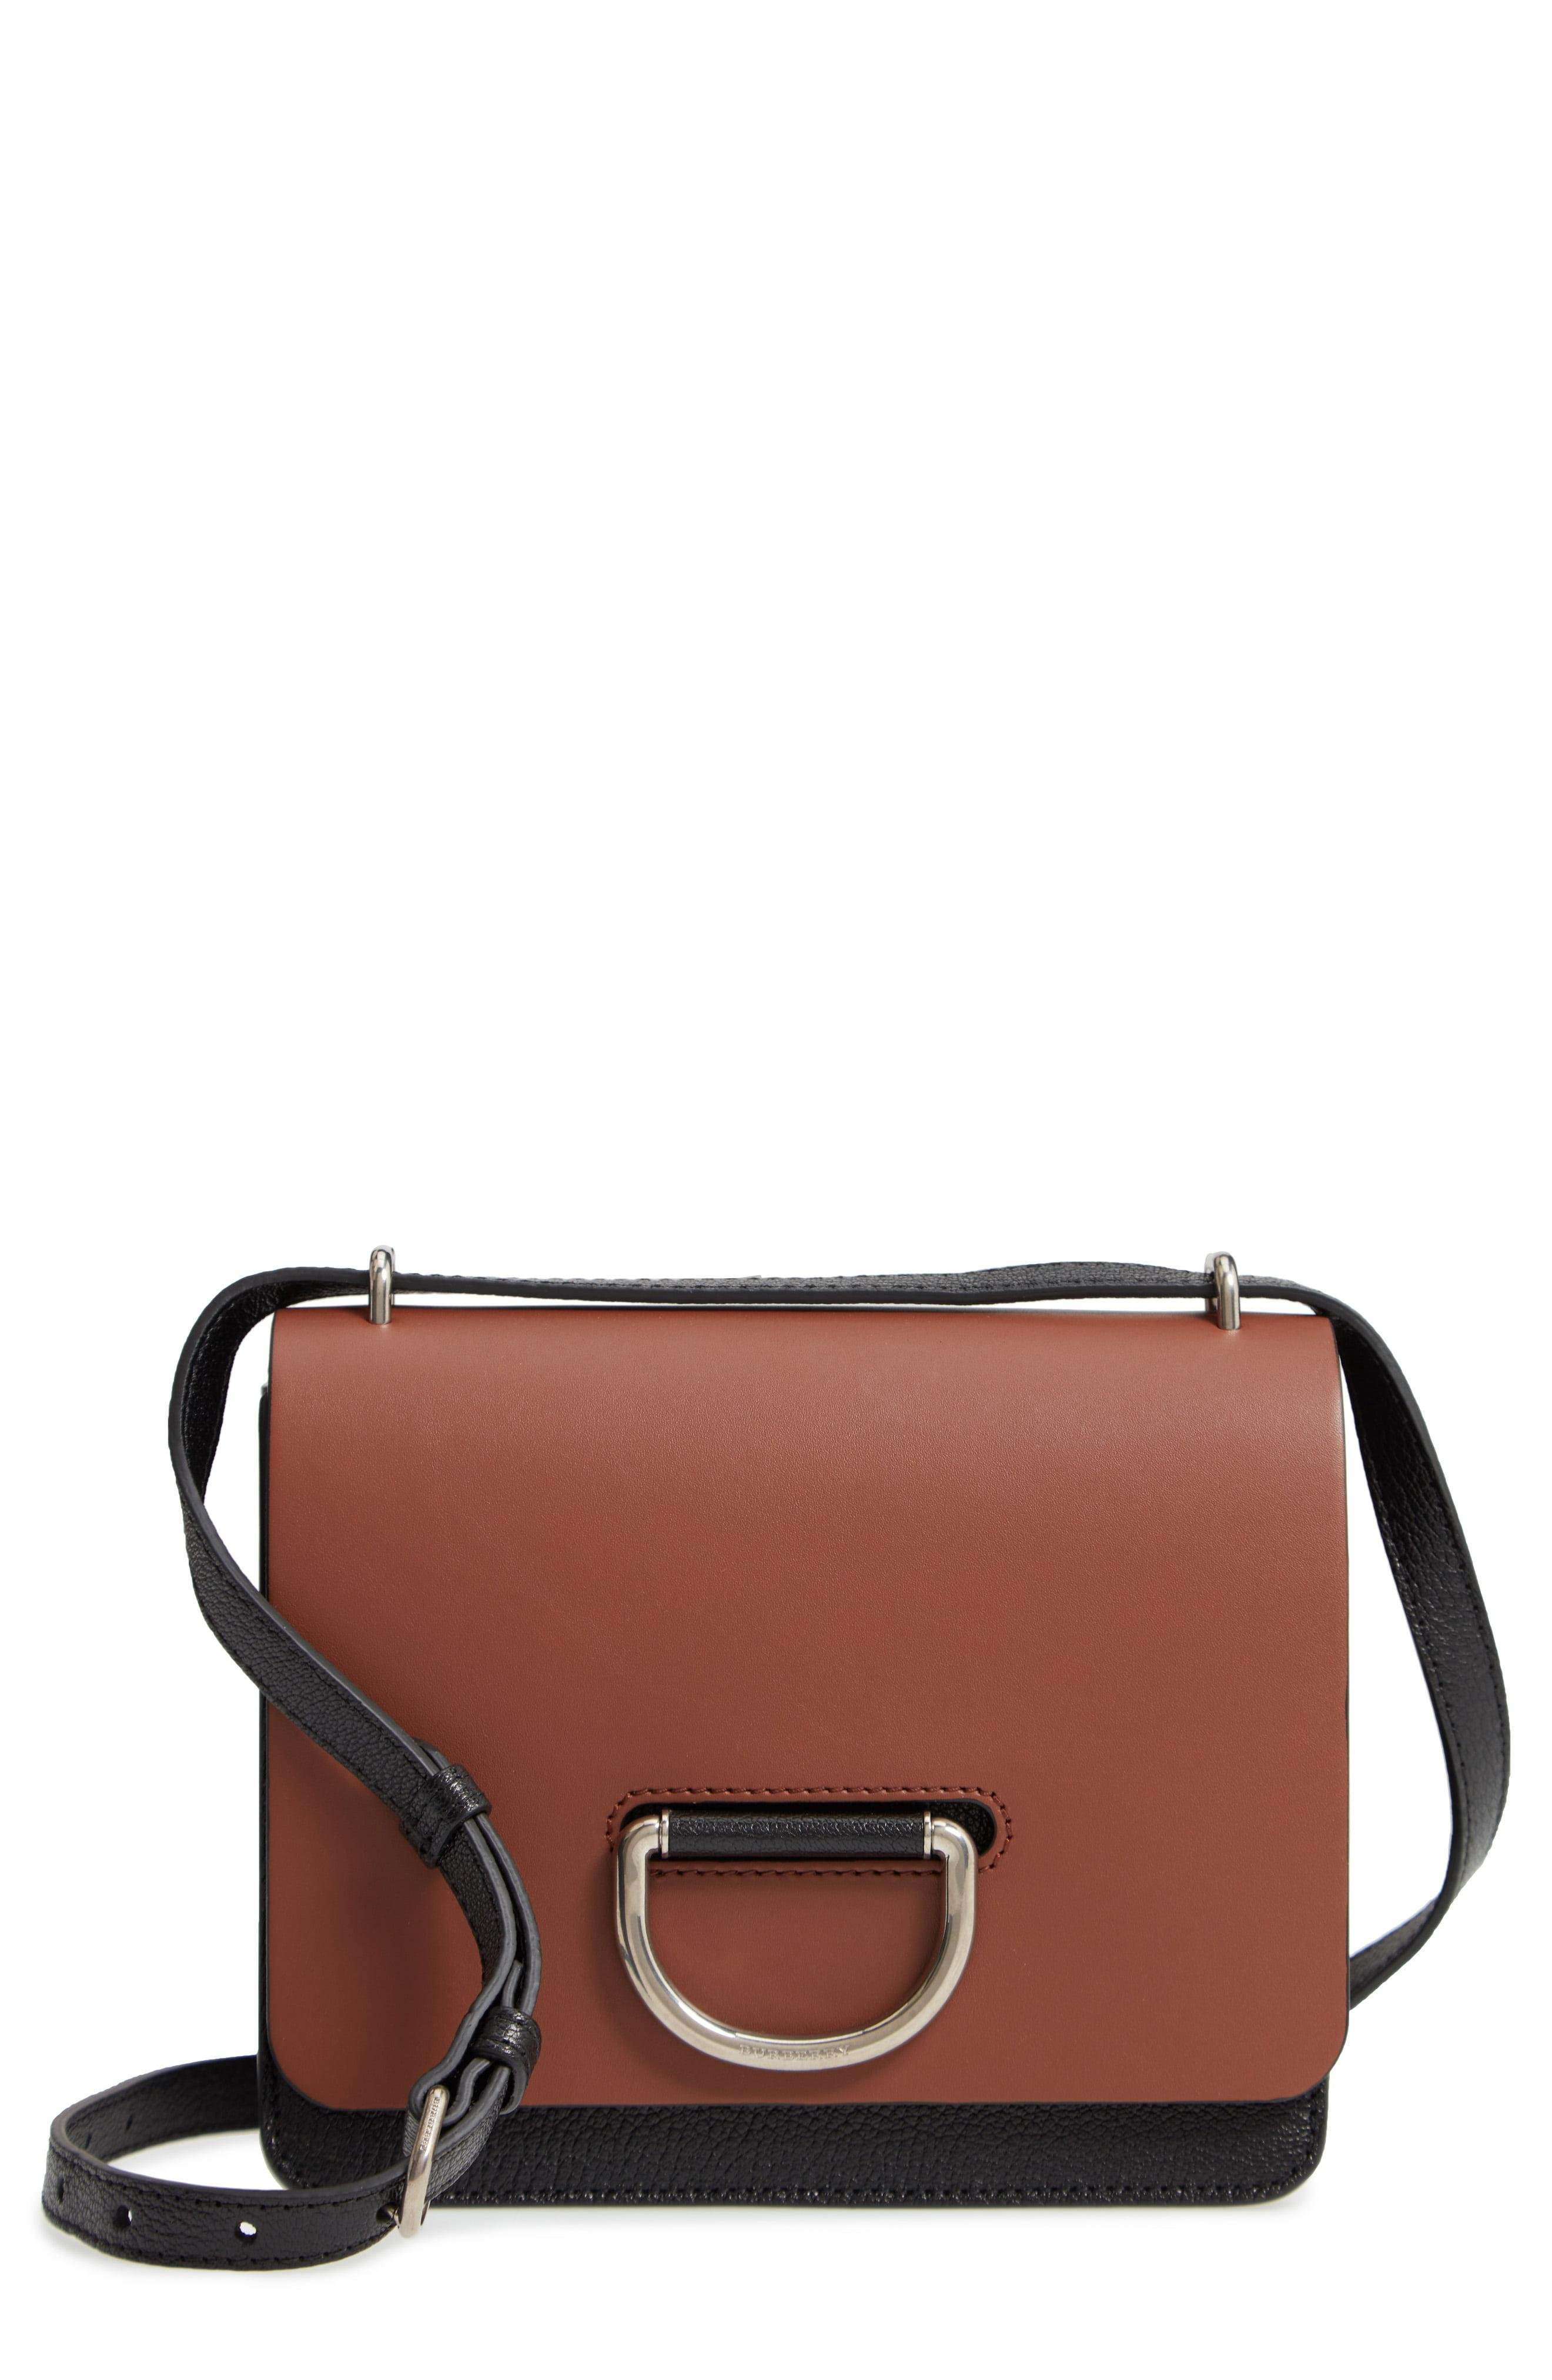 069e437c25f Burberry Small D-ring Leather Crossbody Bag in Brown - Save 43% - Lyst